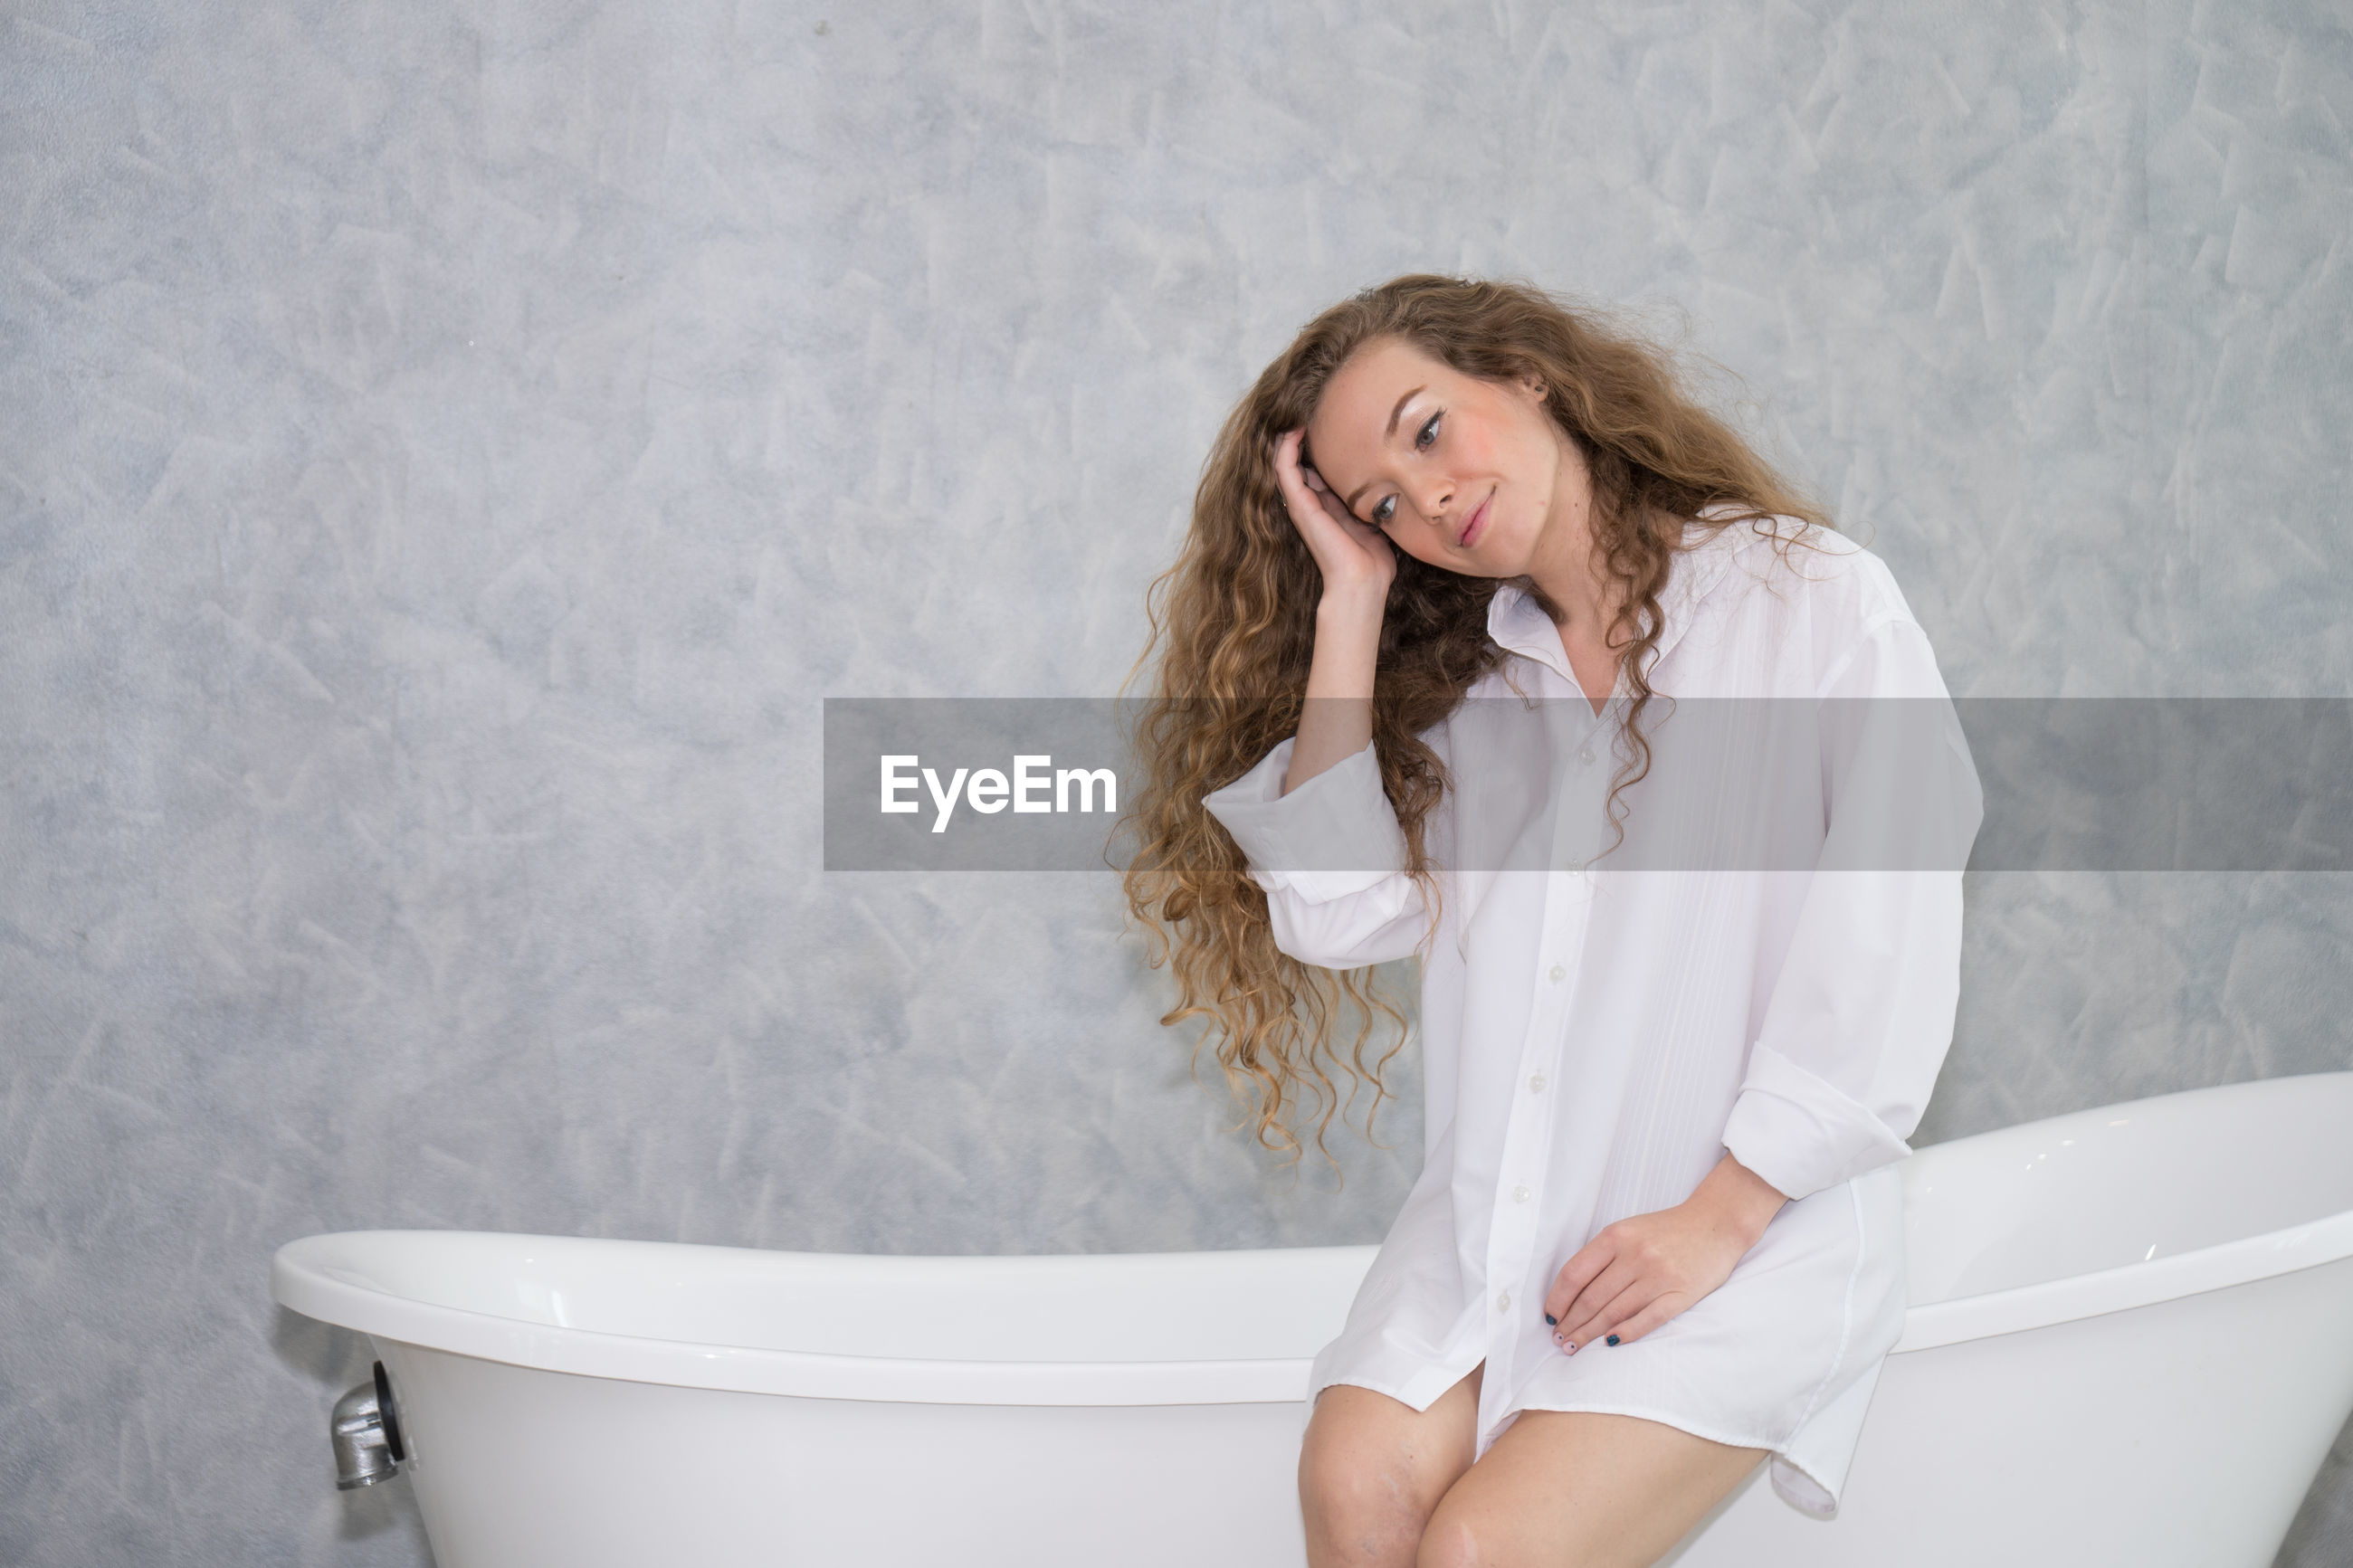 Smiling woman sitting on bathtub against wall